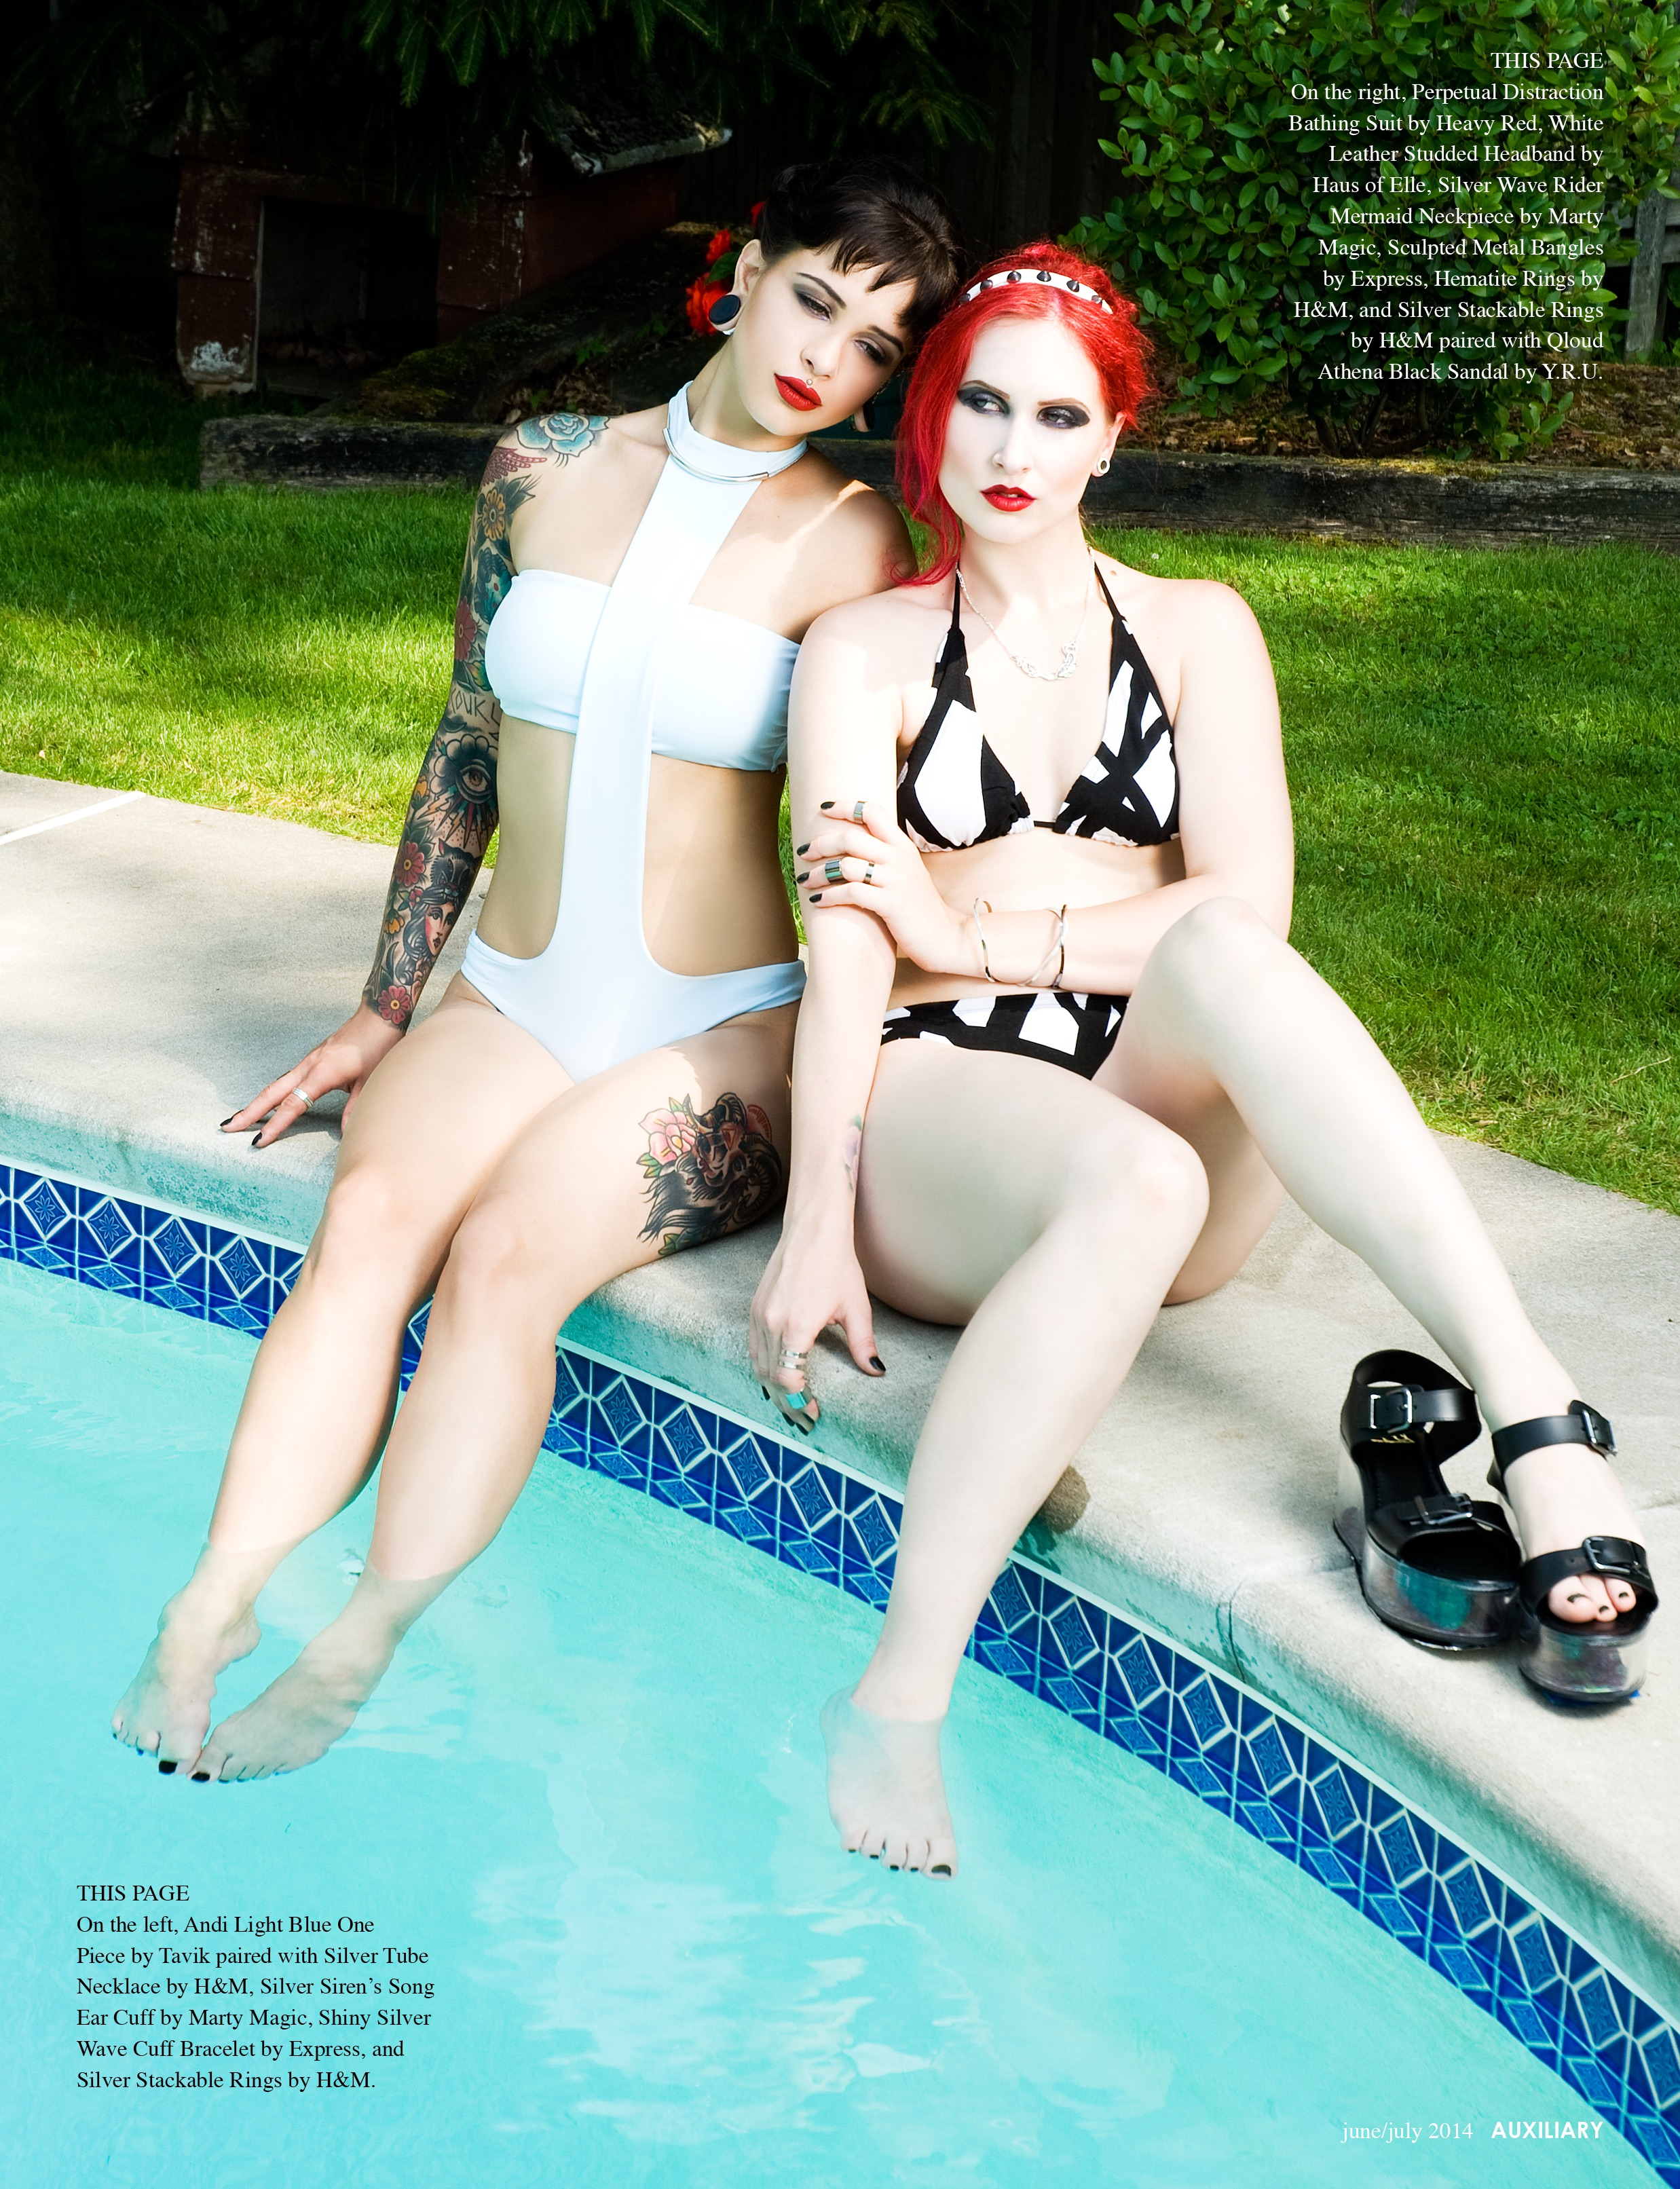 Sirens: Auxiliary Magazine June/July 2014 Issue